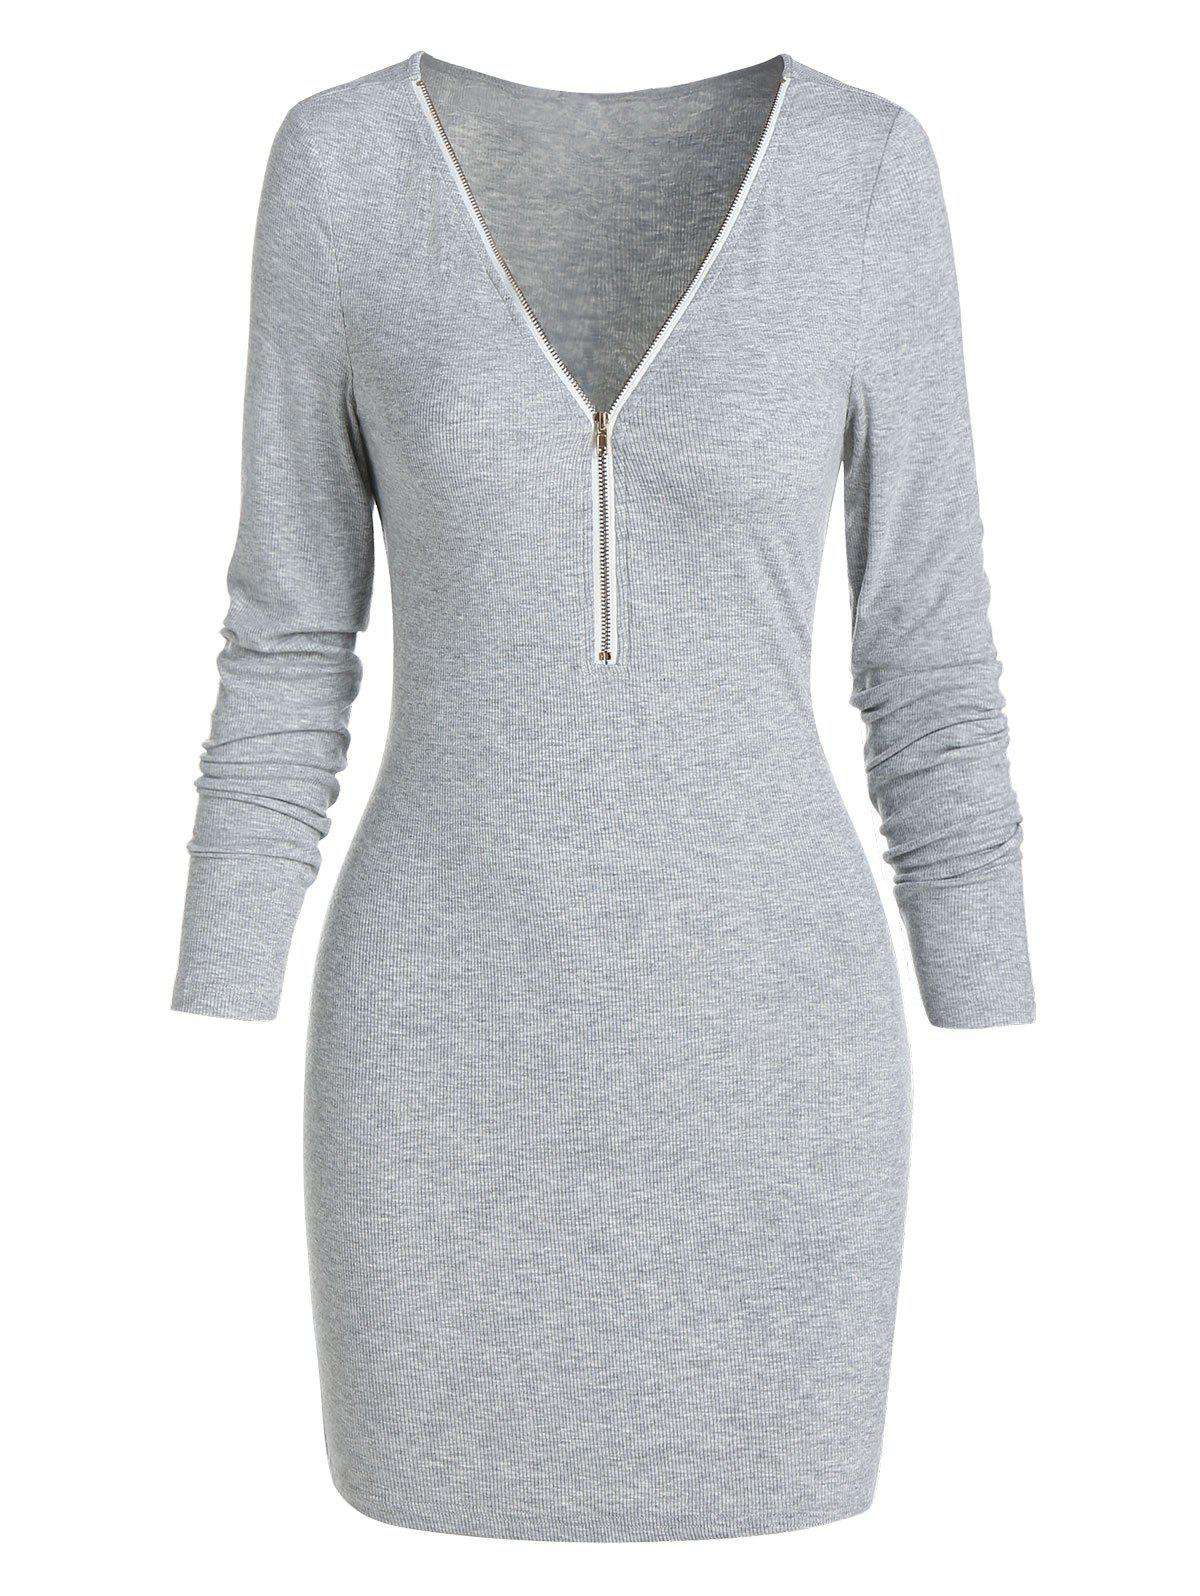 Plain V Neck Knitted Mini Bodycon Dress - LIGHT GRAY 2XL